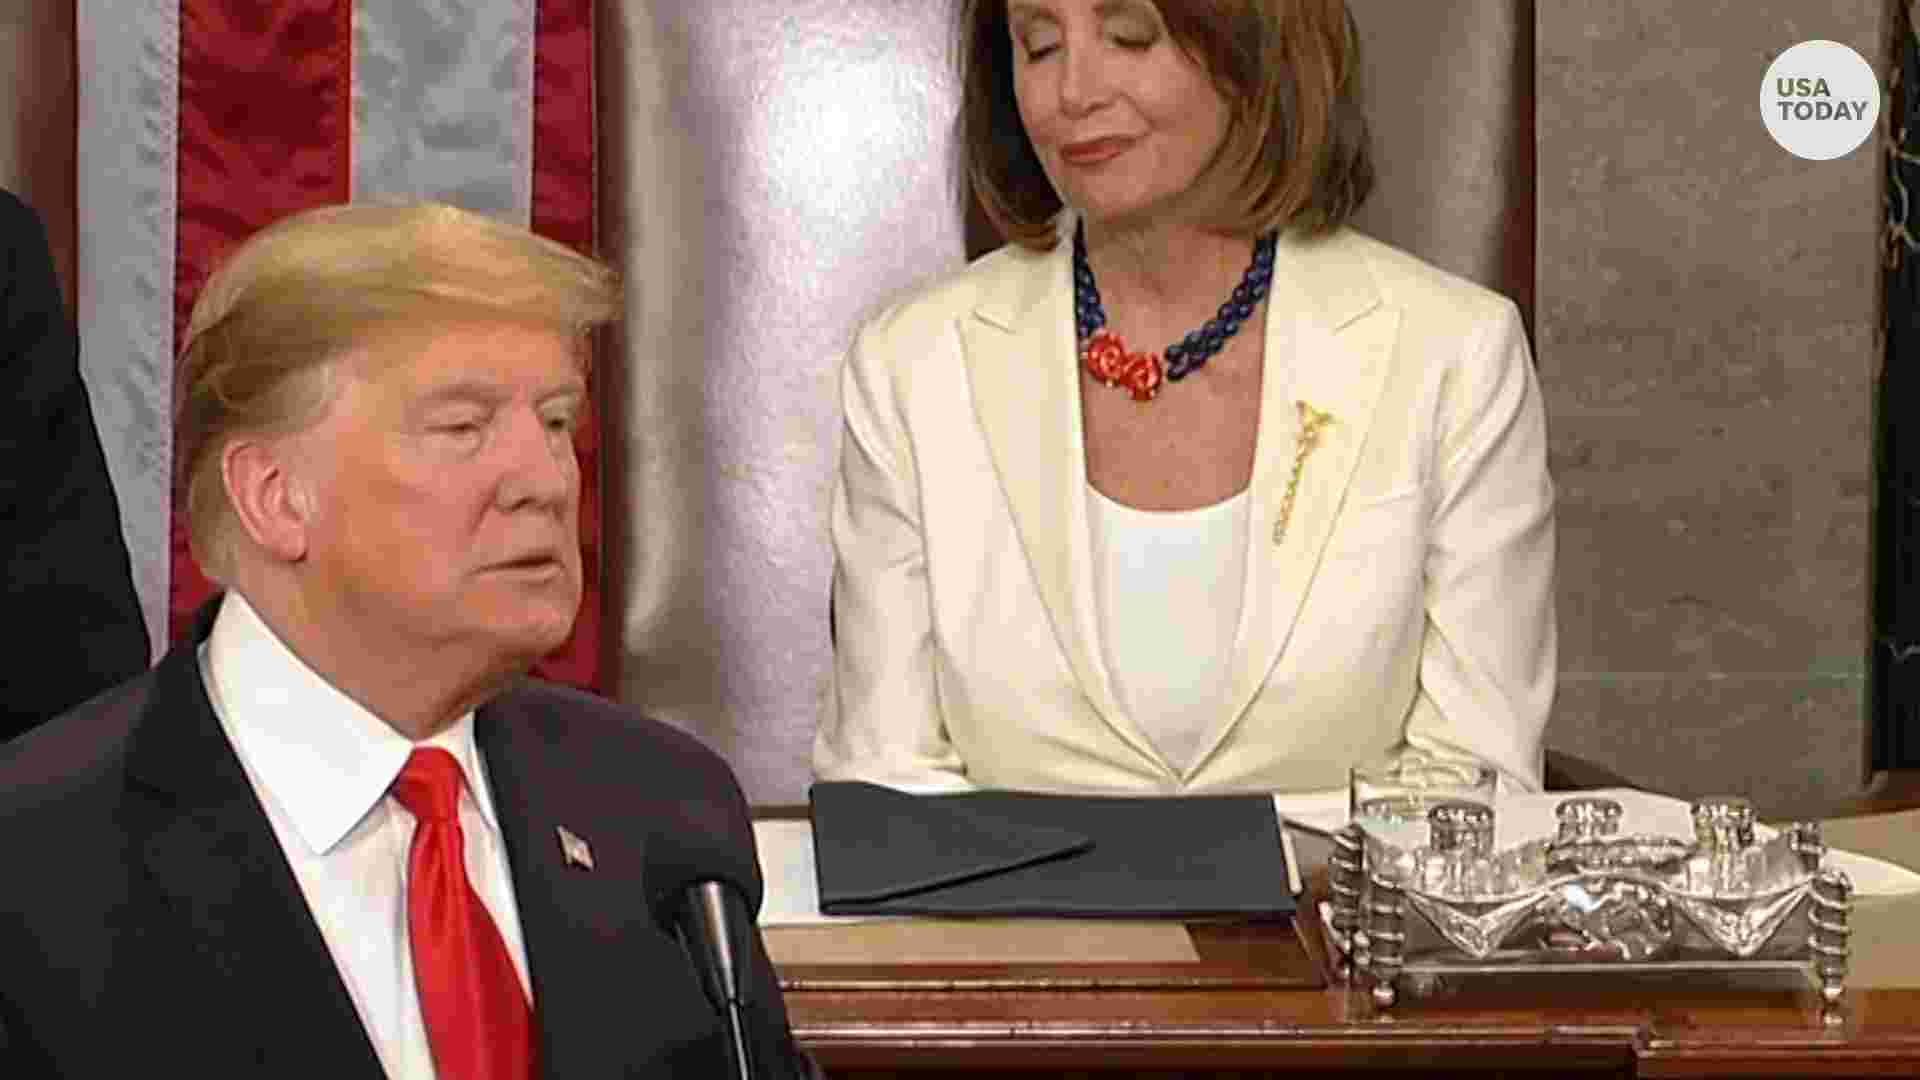 State of the Union: Six takeaways from President Trump's speech USA Today State of the Union: The chance of Trump's agenda getting through Congress and other takeaways